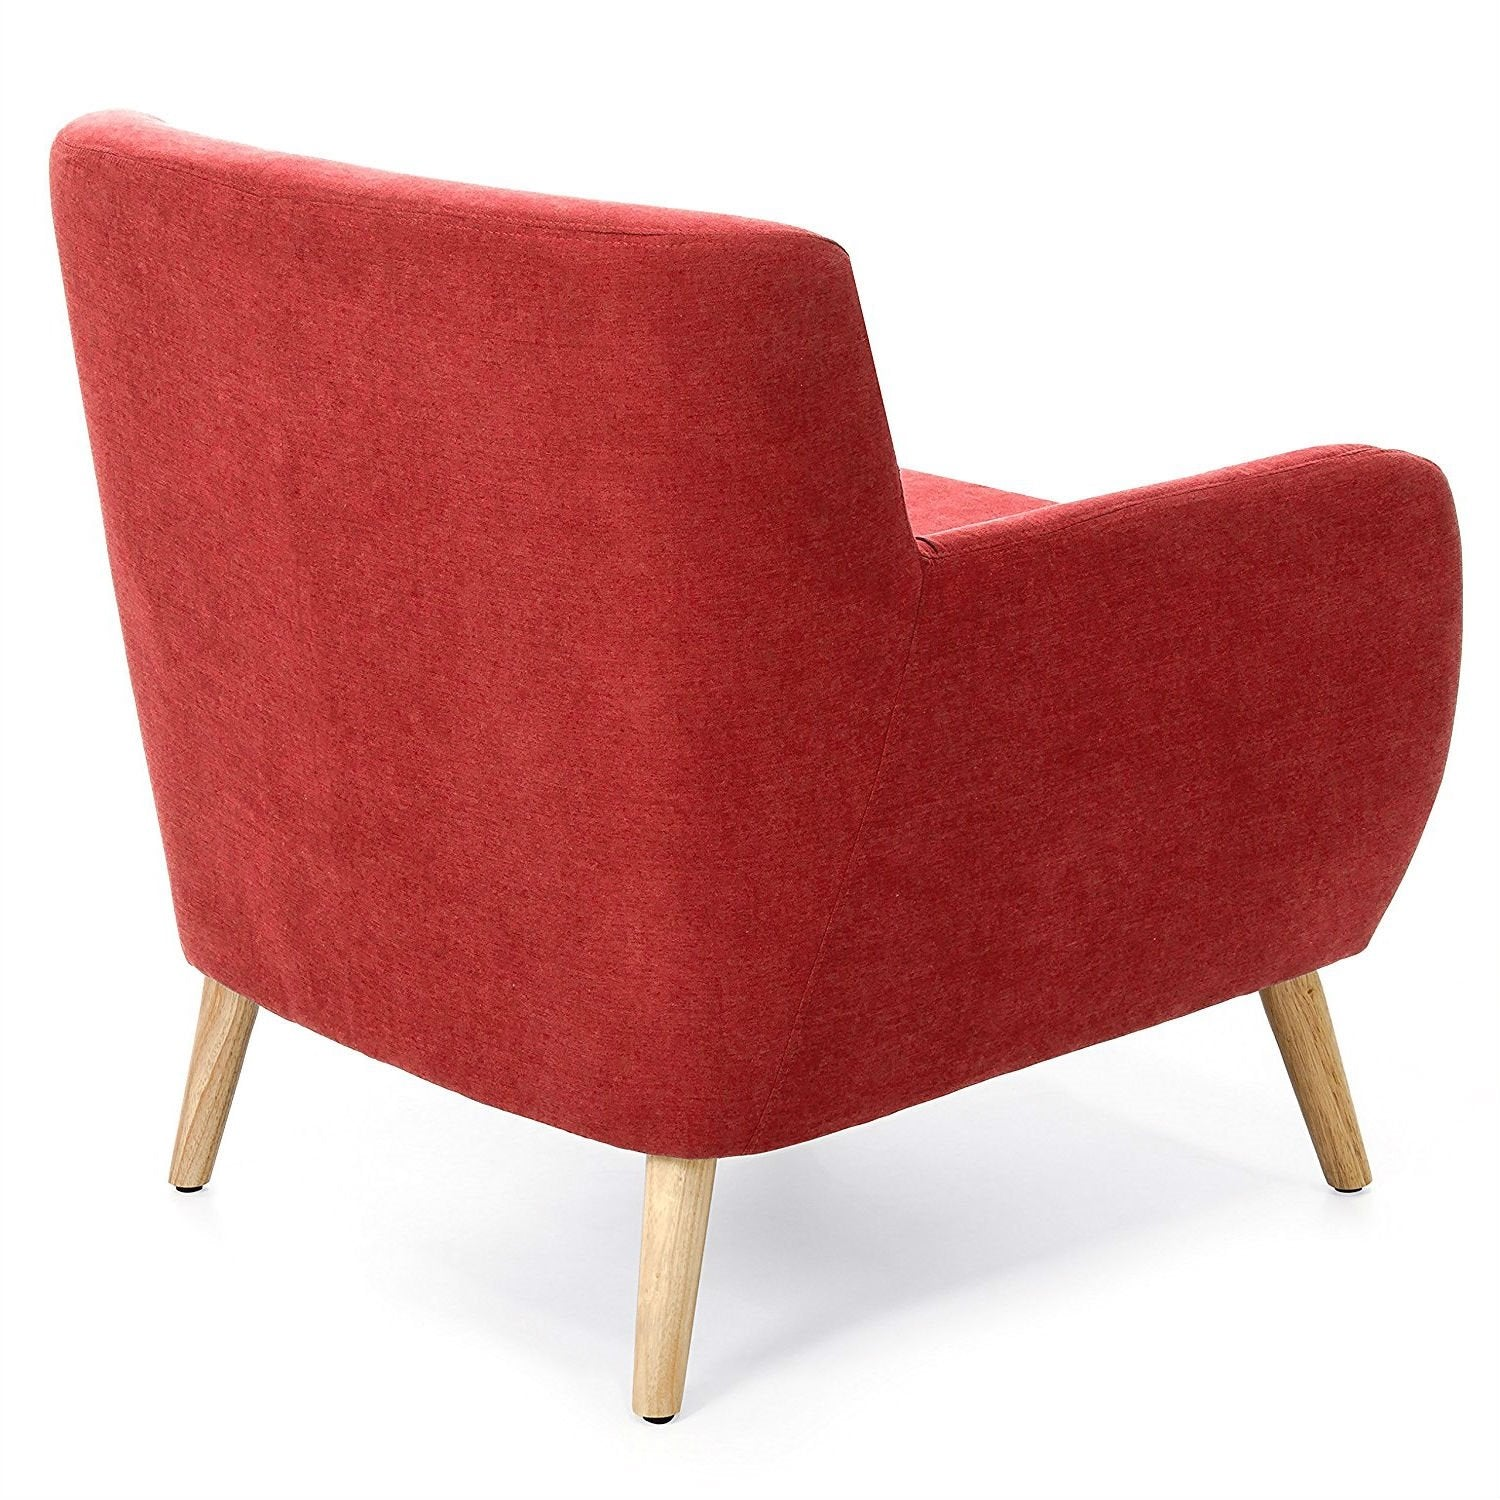 Red Linen Upholstered Armchair with Mid-Century Modern Classic Style Wood Legs